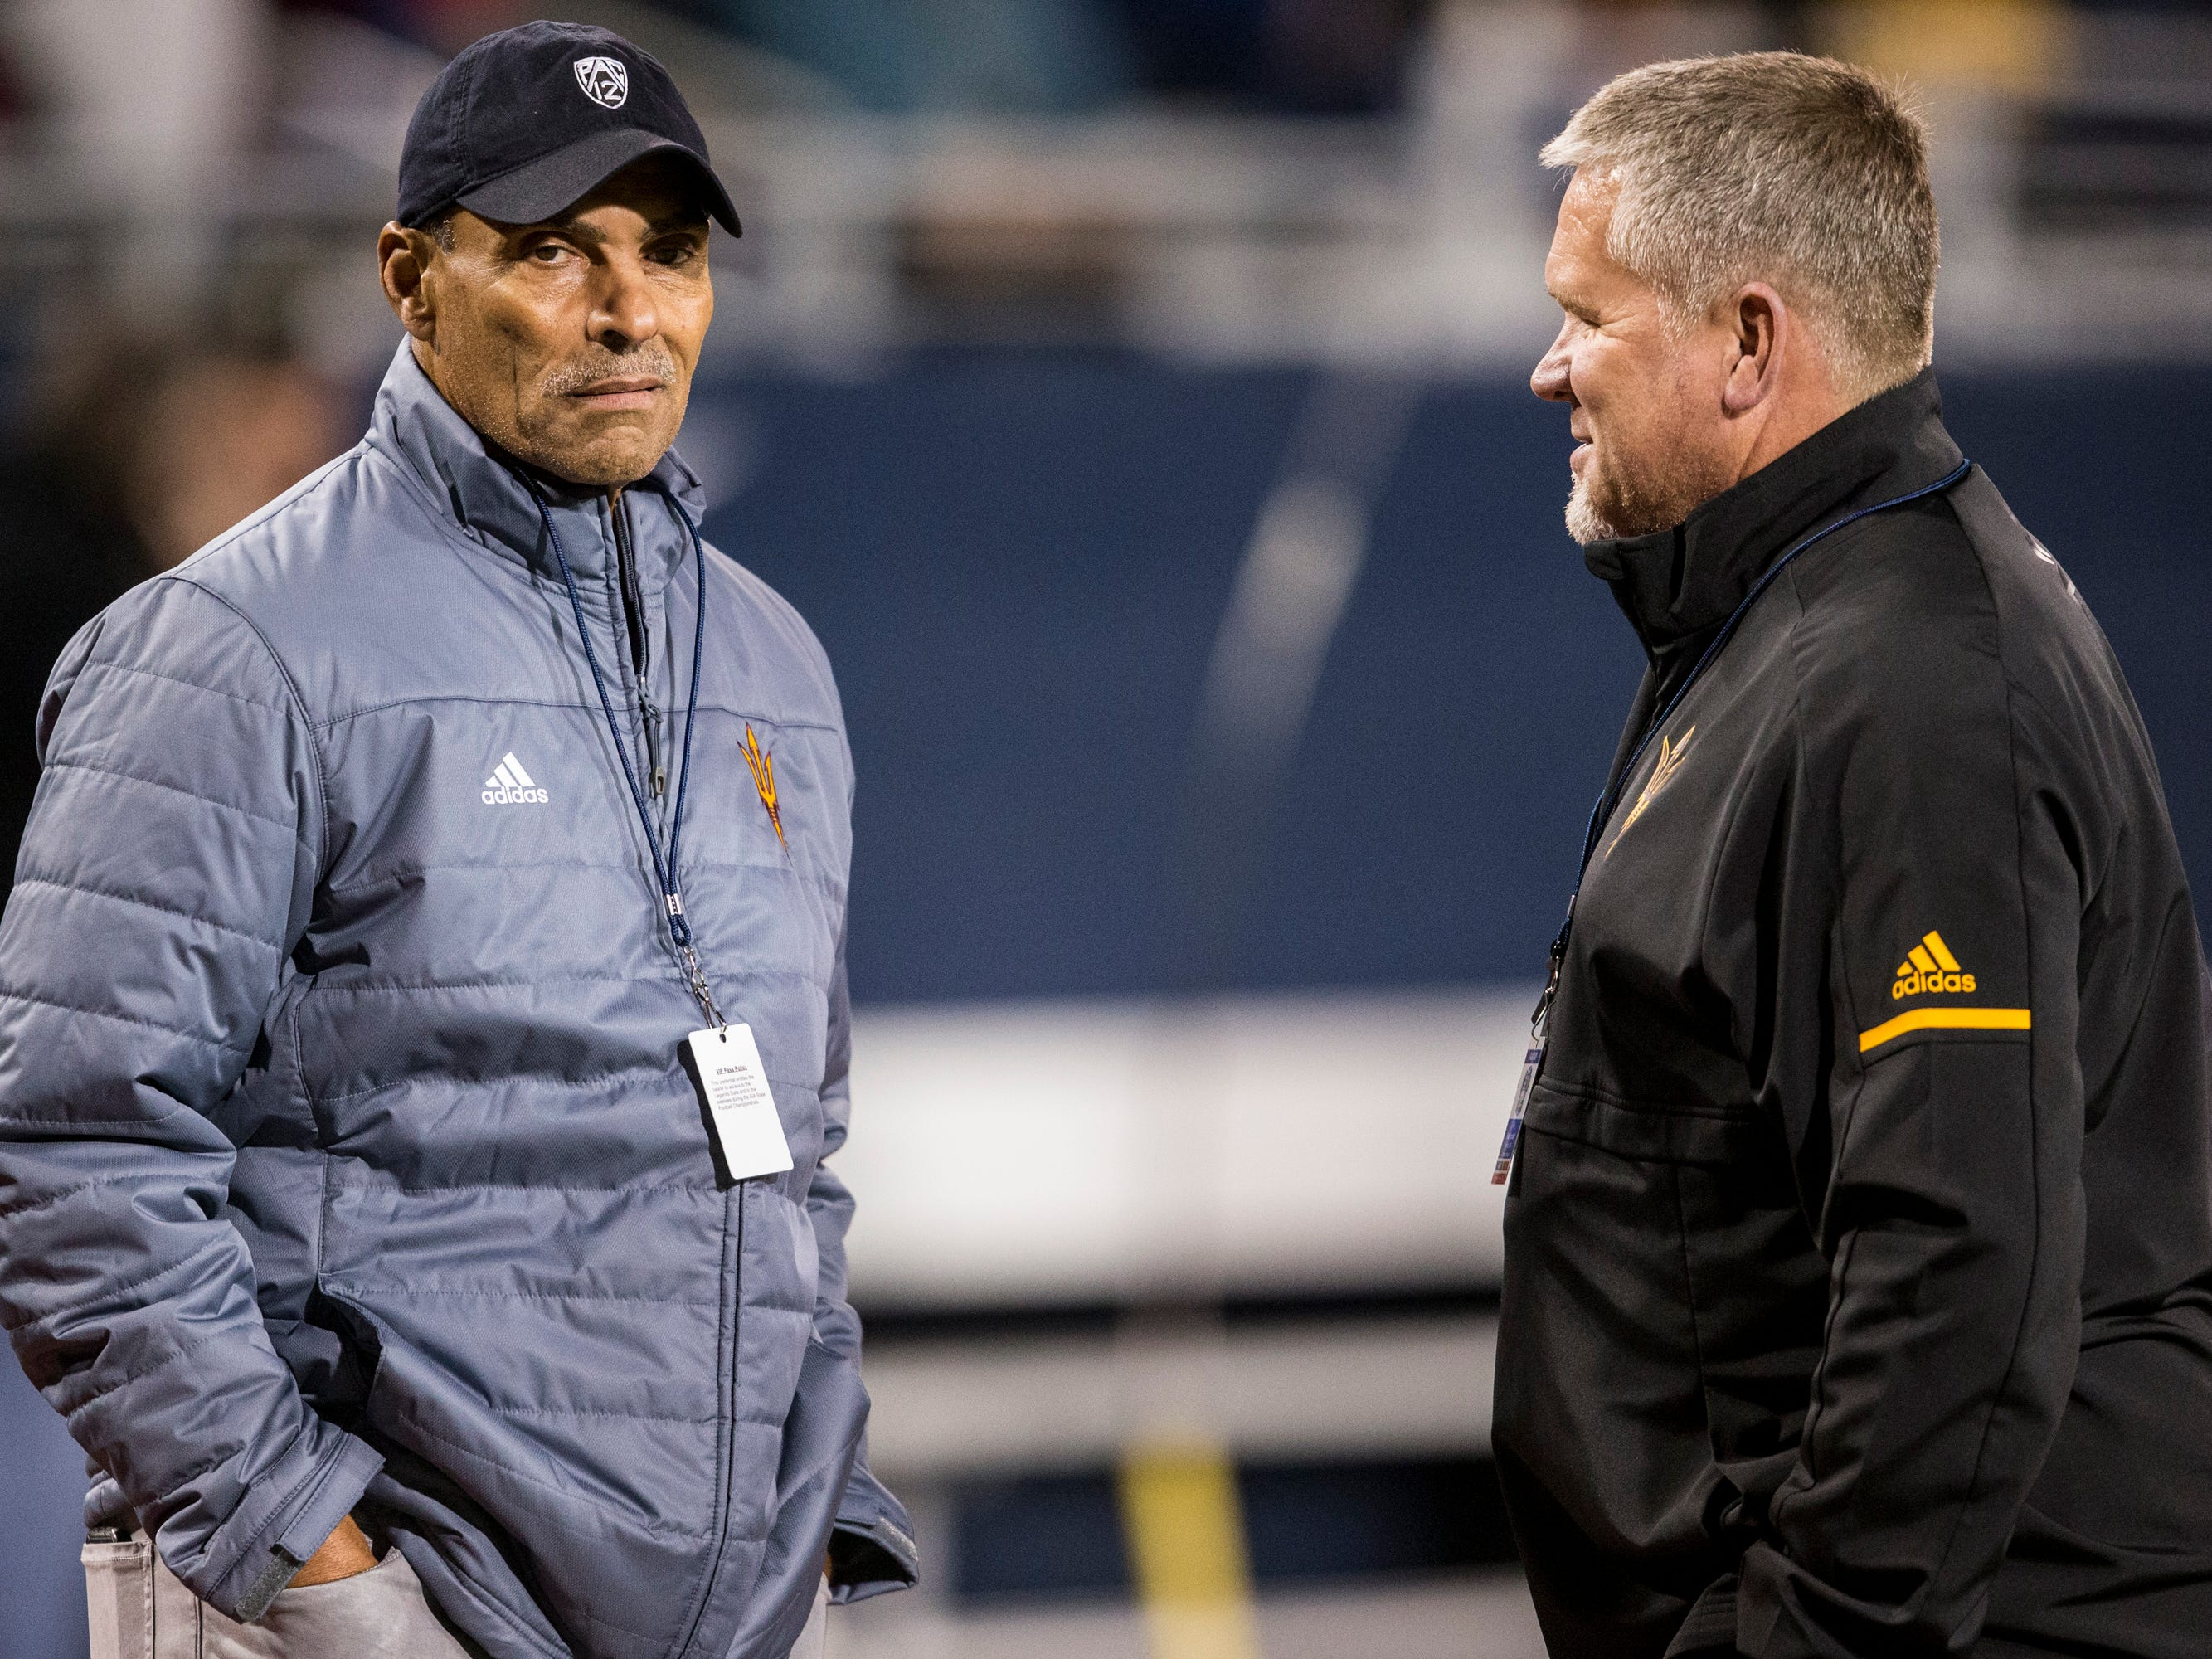 ASU's Herm Edwards and Shawn Slocum talk before the 4A State Championship between Salpointe and Saguaro on Friday, Nov. 30, 2018, at Arizona Stadium in Tucson, Ariz. 